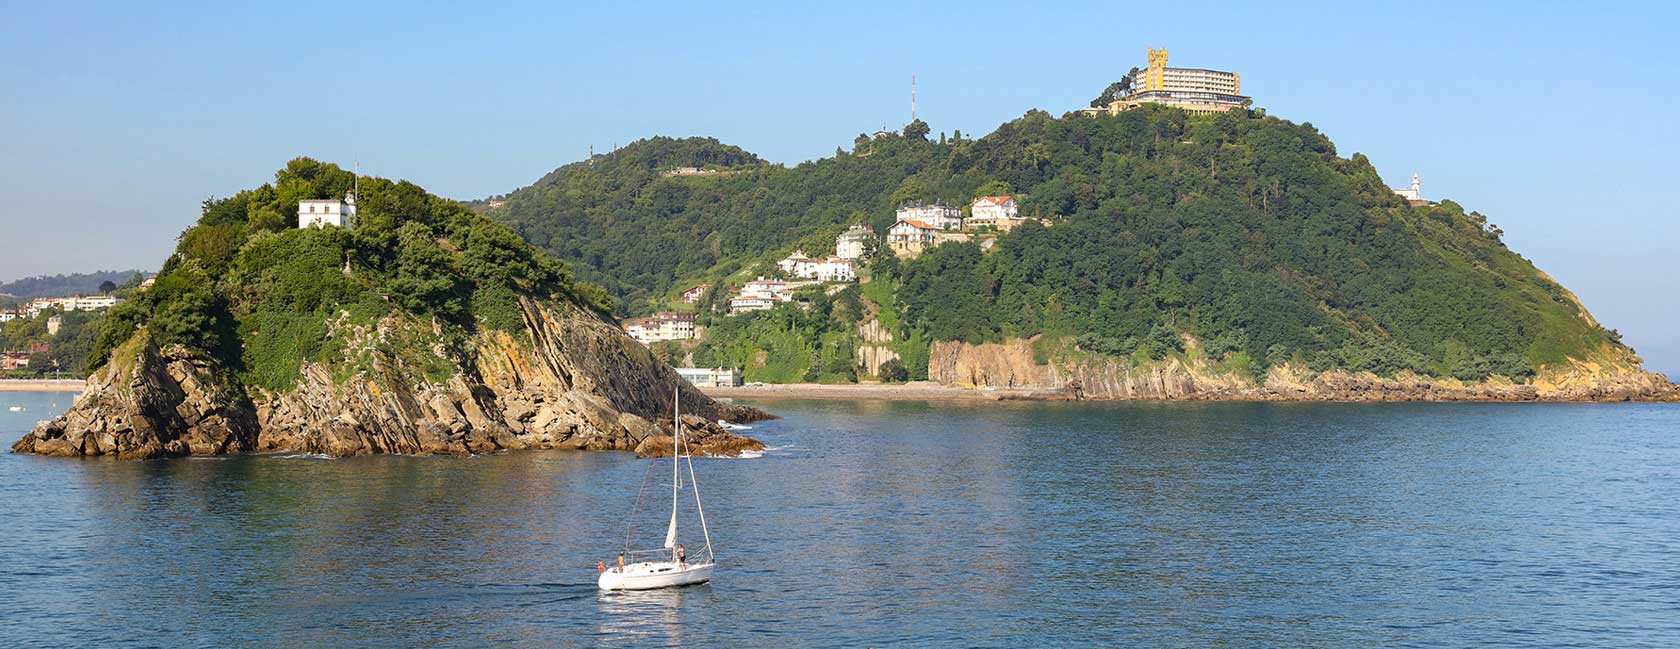 The most prestigious travel media outlets have recommended visiting San Sebastian